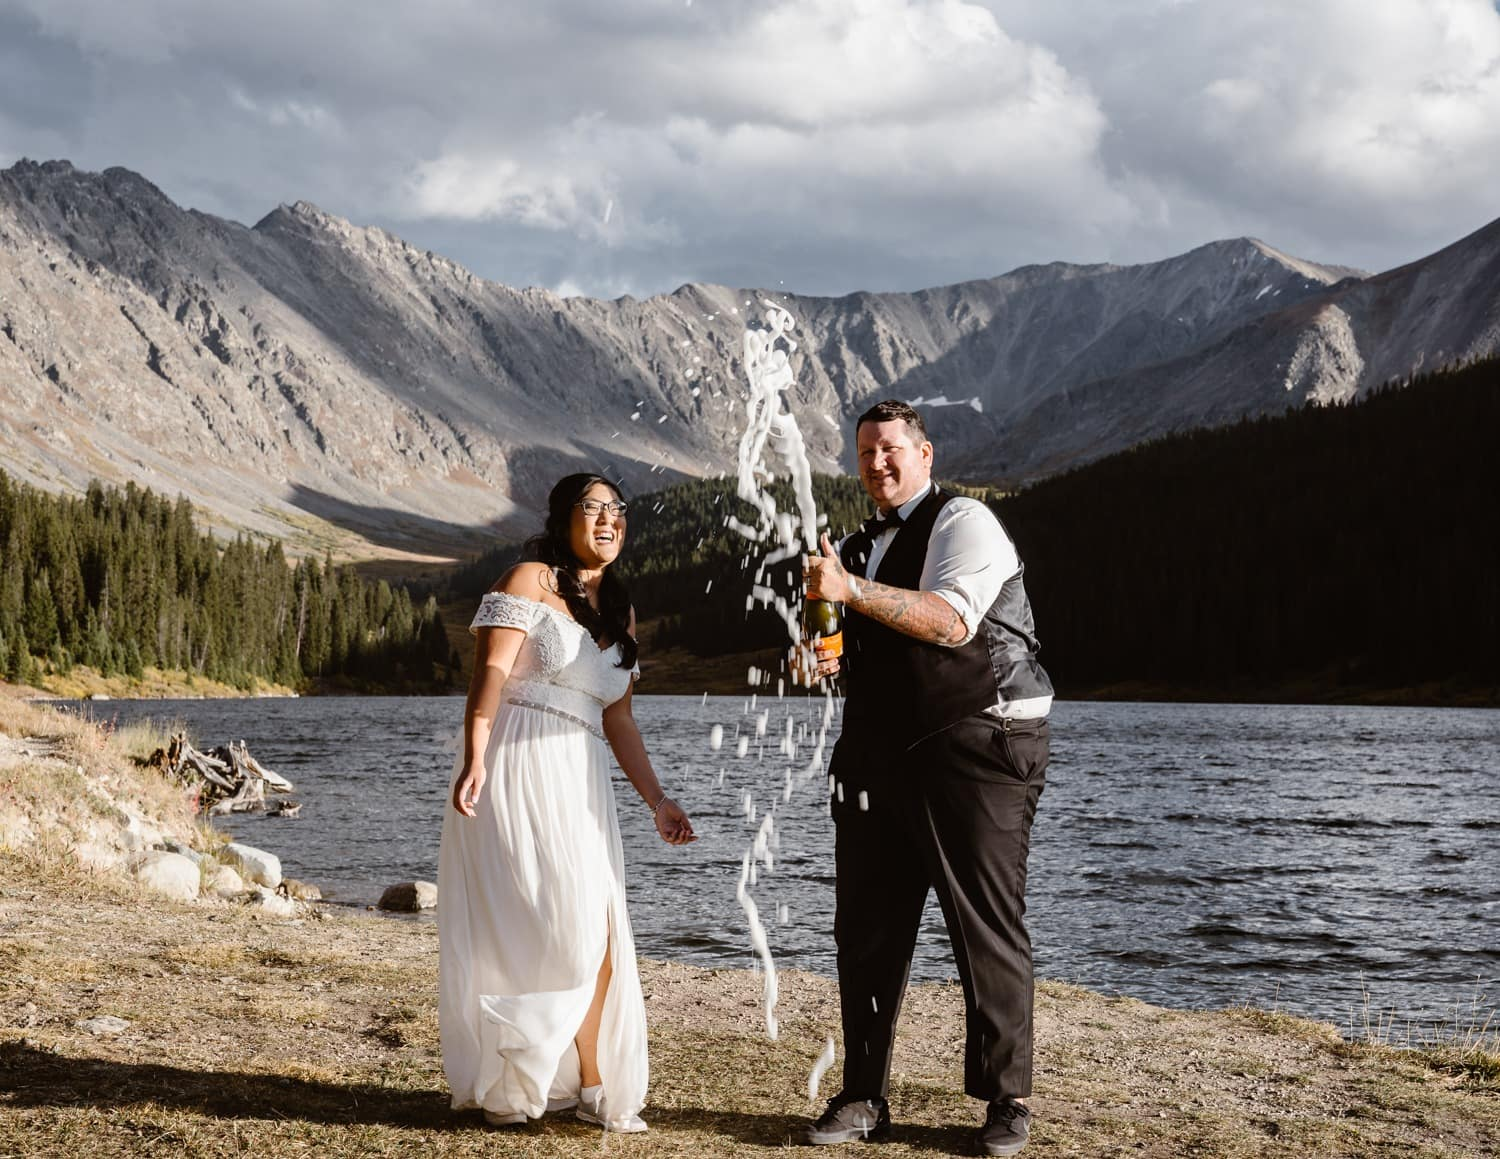 Colorado Mountain Sunset Elopement Pack List